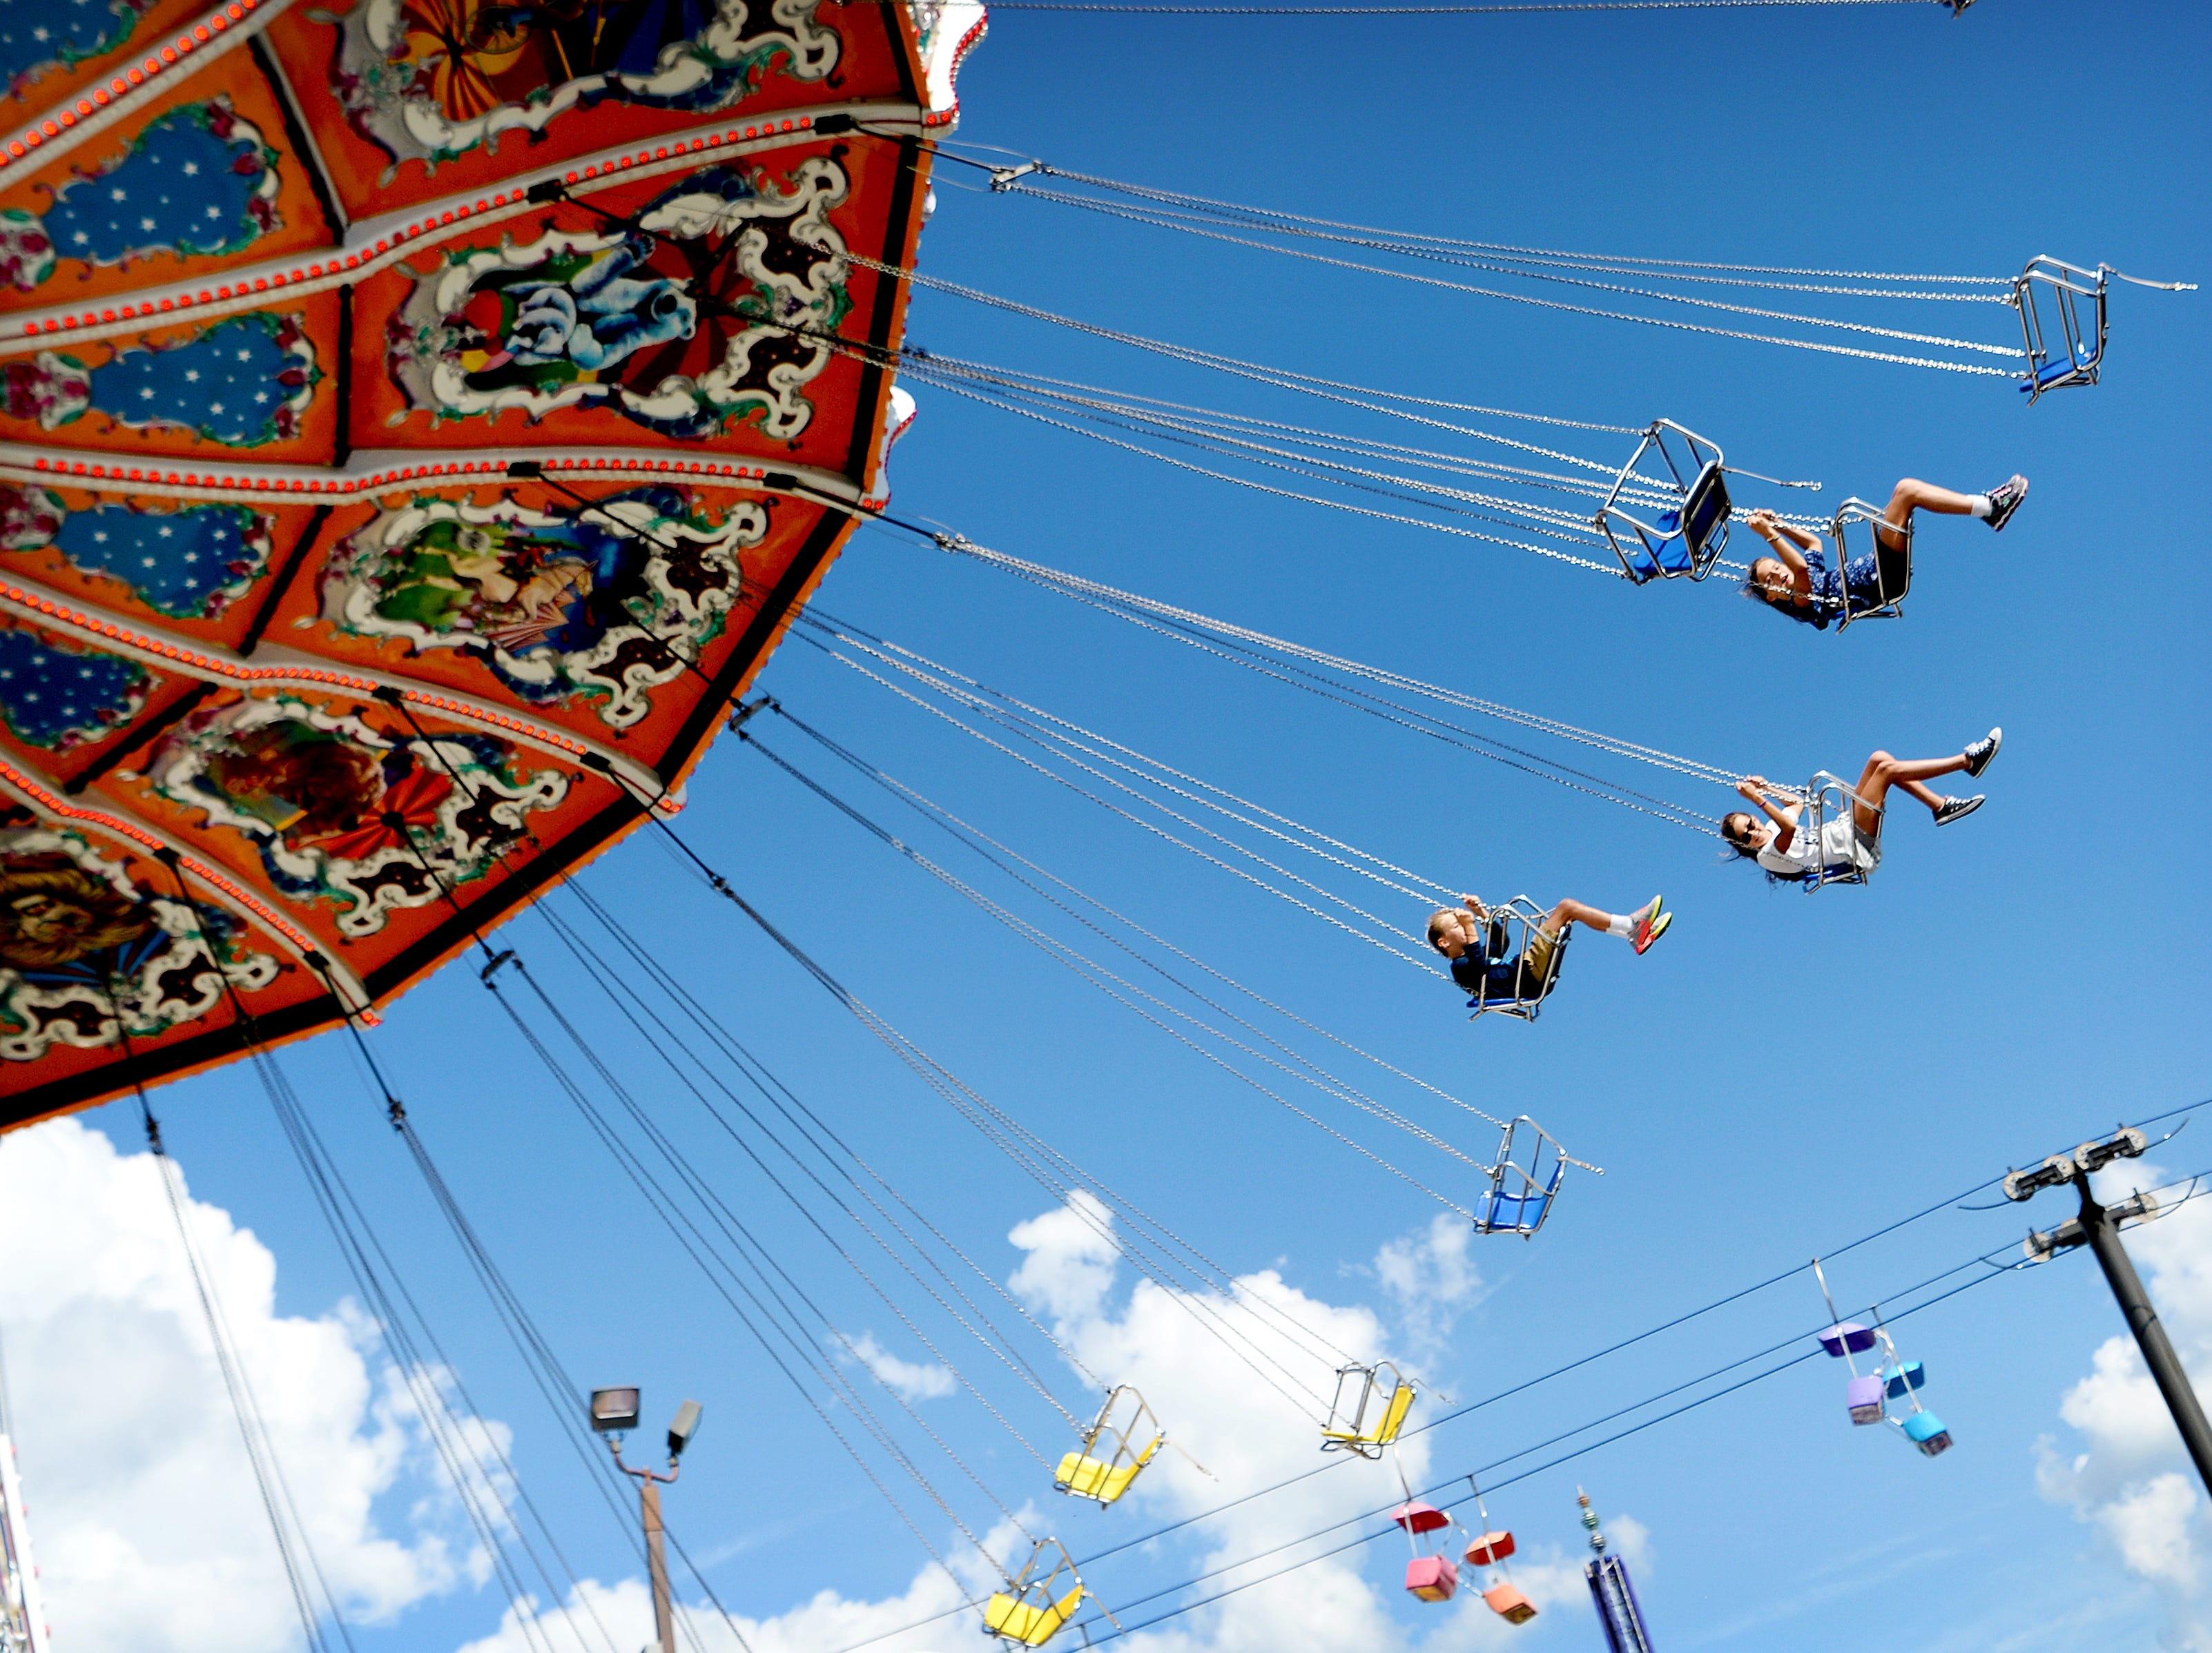 Daniel Thompson, 7, and his sisters Brielle, 11, center, and Lillie, 9, ride the Flying Circus during the NC Mountain State Fair at the WNC Agricultural Center on Sept. 7, 2018.